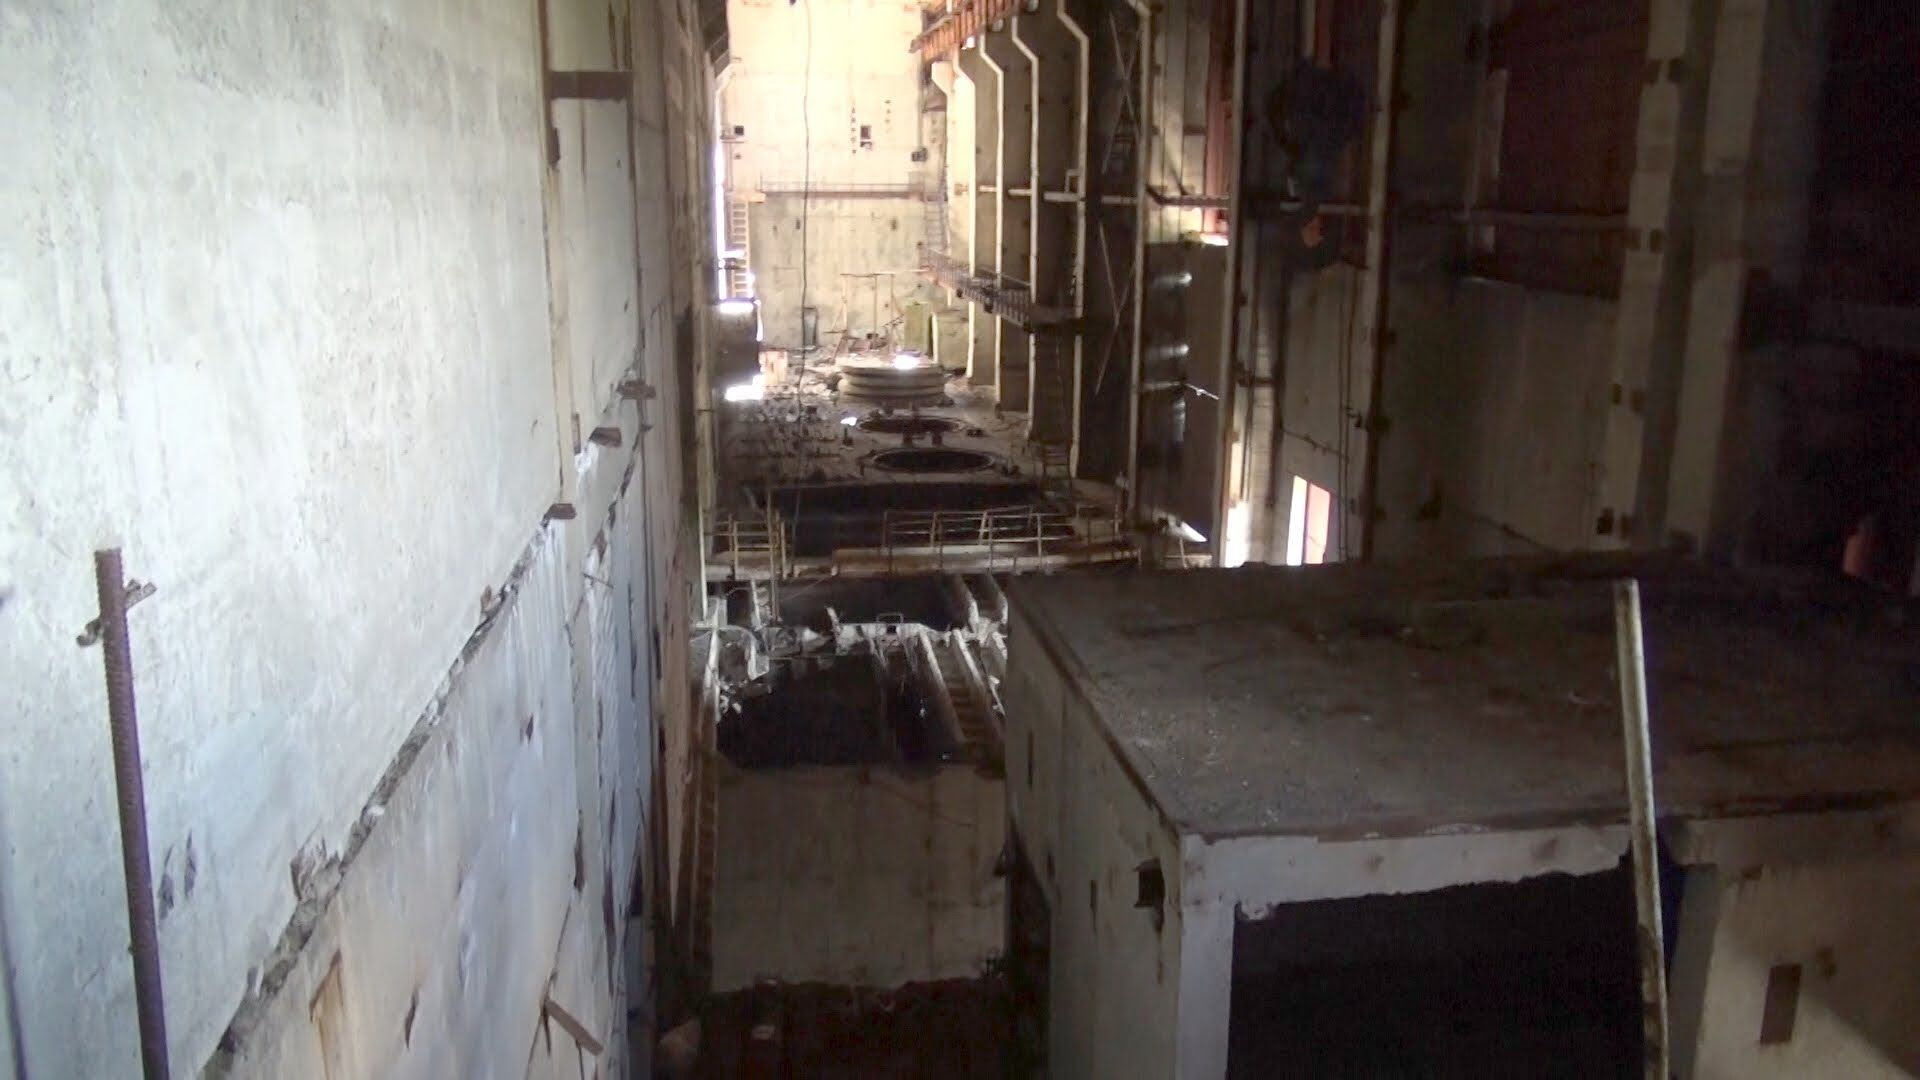 chernobyl 2013: inside the reactors 5+6, part 1: pitfalls and darkness